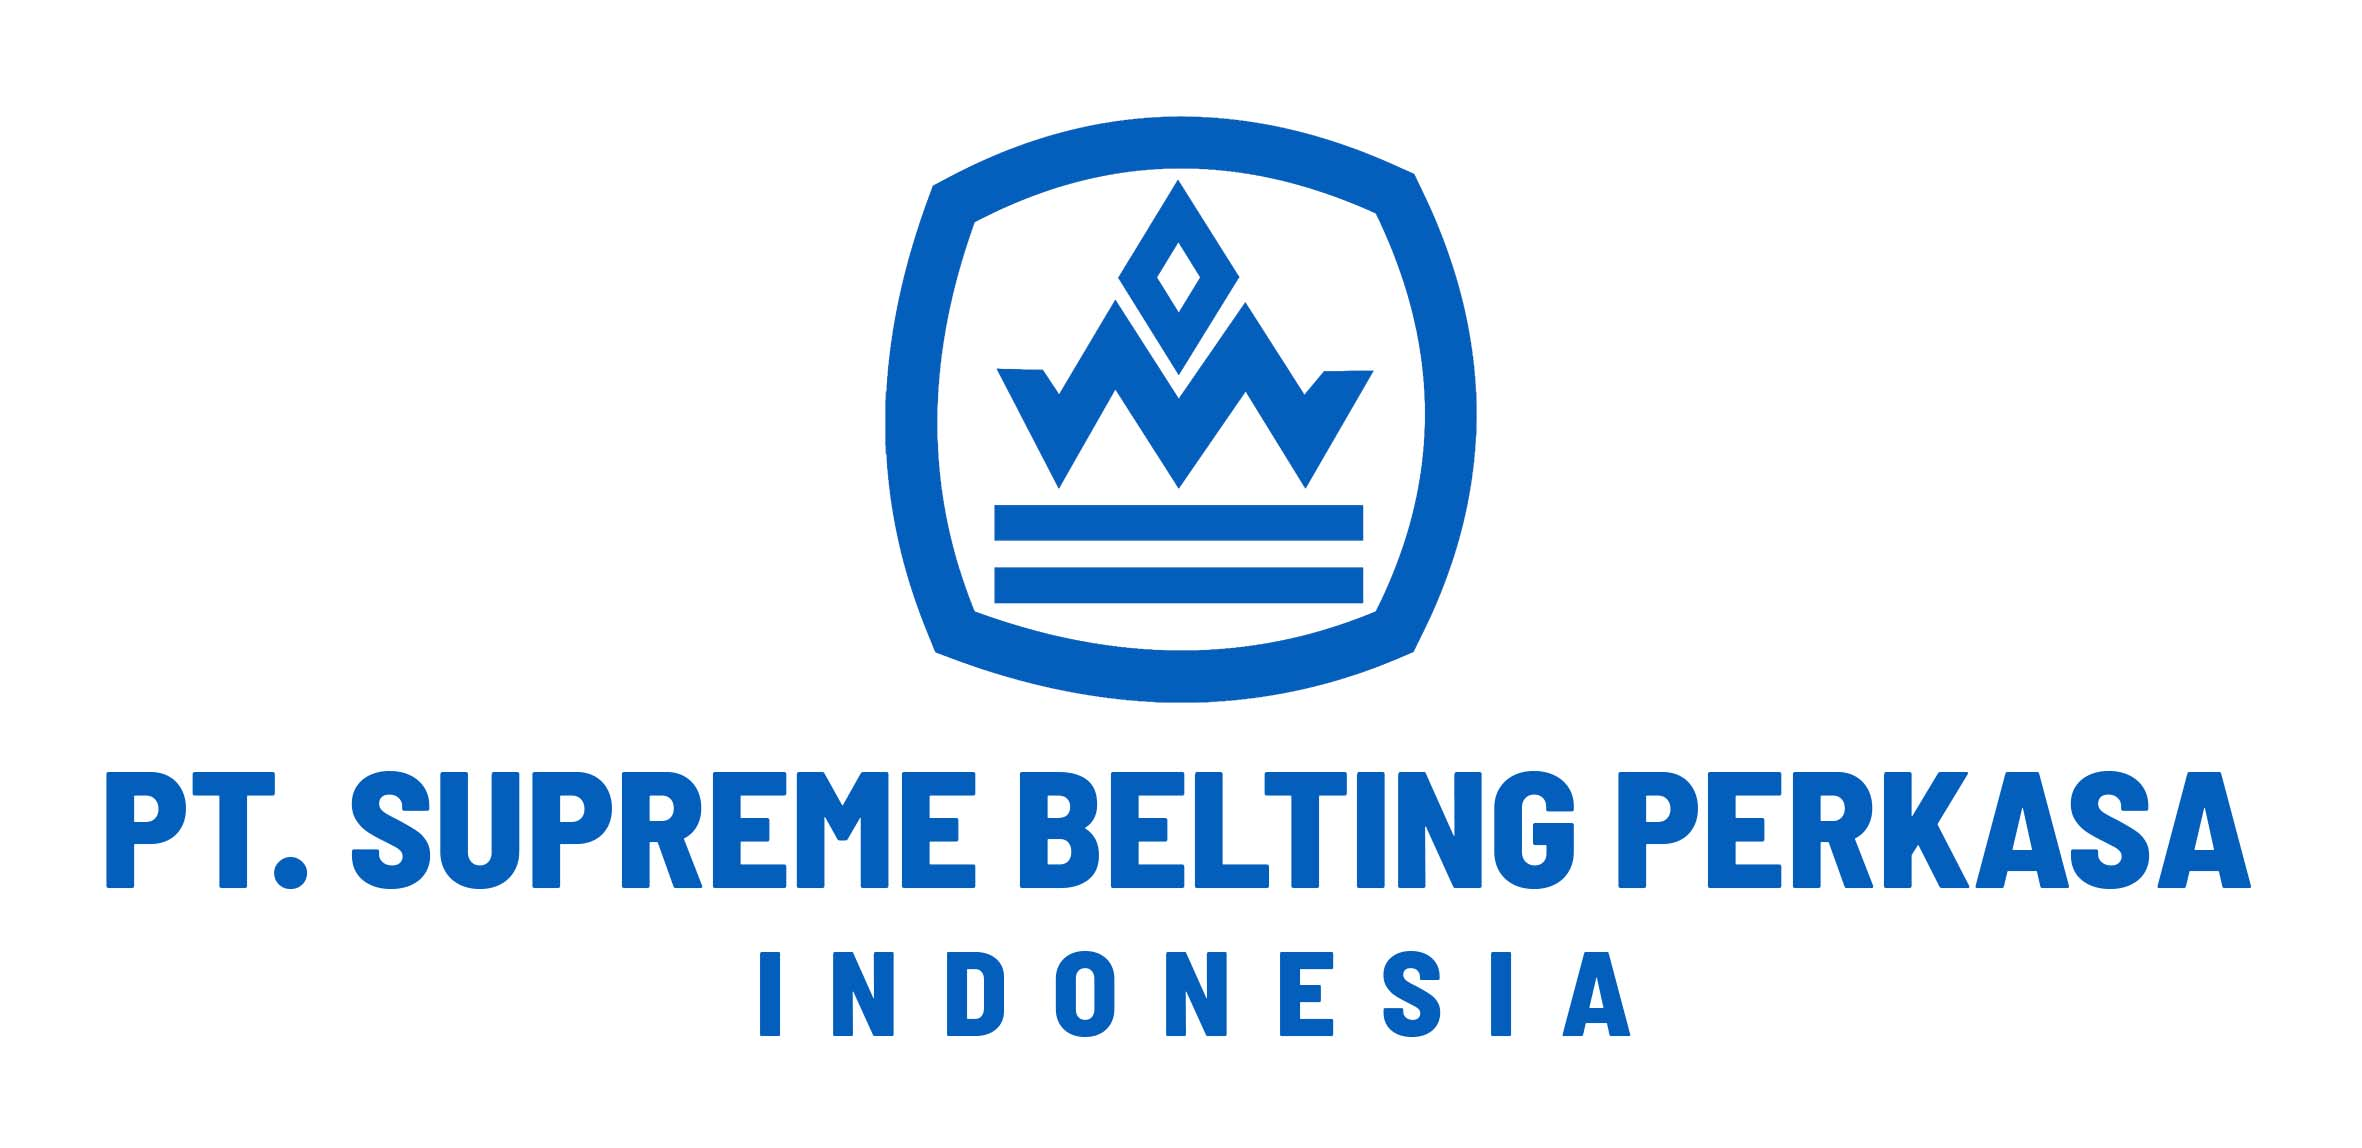 SUPREME BELTING INDONESIA